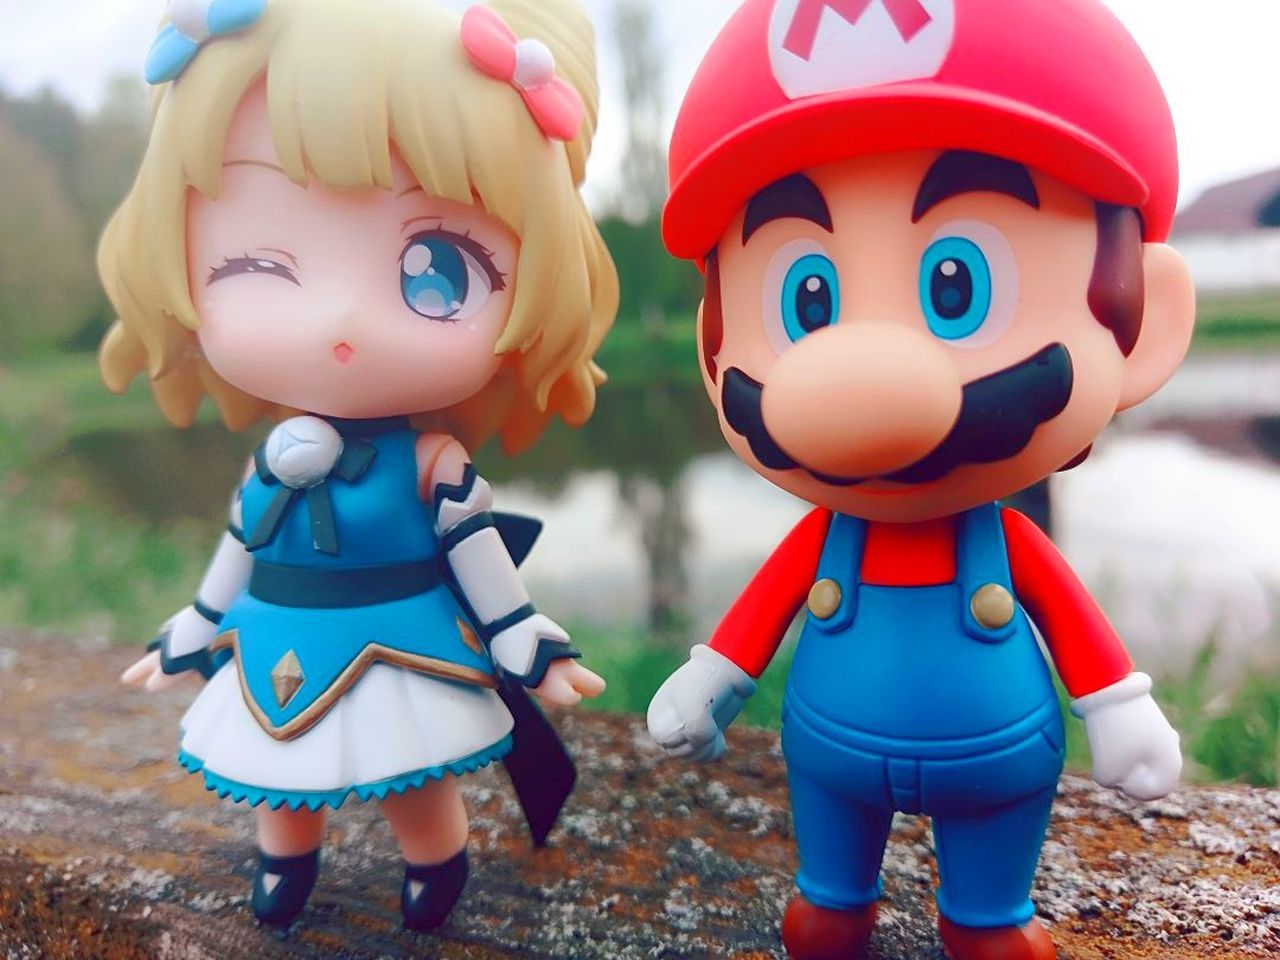 Child Boys Grass Doll Figurephotography Figure Figures Nendoroid Nendophotography Nendoroidphotography Funkopopvinyl Funko Mario Supermario Lovelife LoveLive! Loveliveschoolidolproject Water First Eyeem Photo